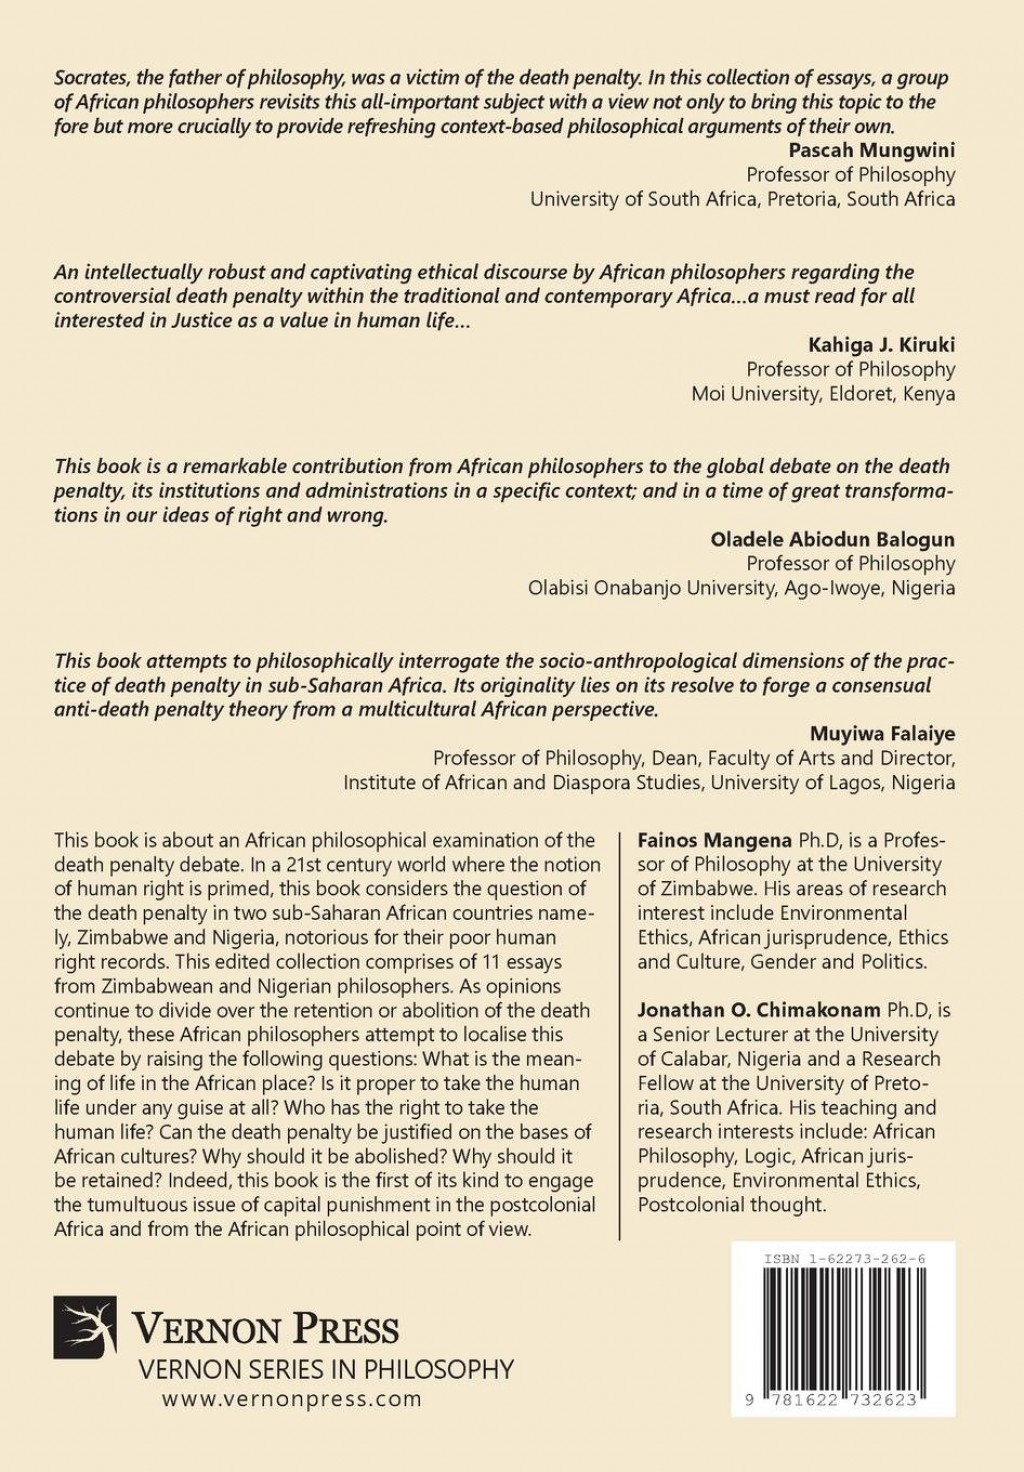 024 Research Paper 81vrssk91il Death Penalty Imposing Ideas Large